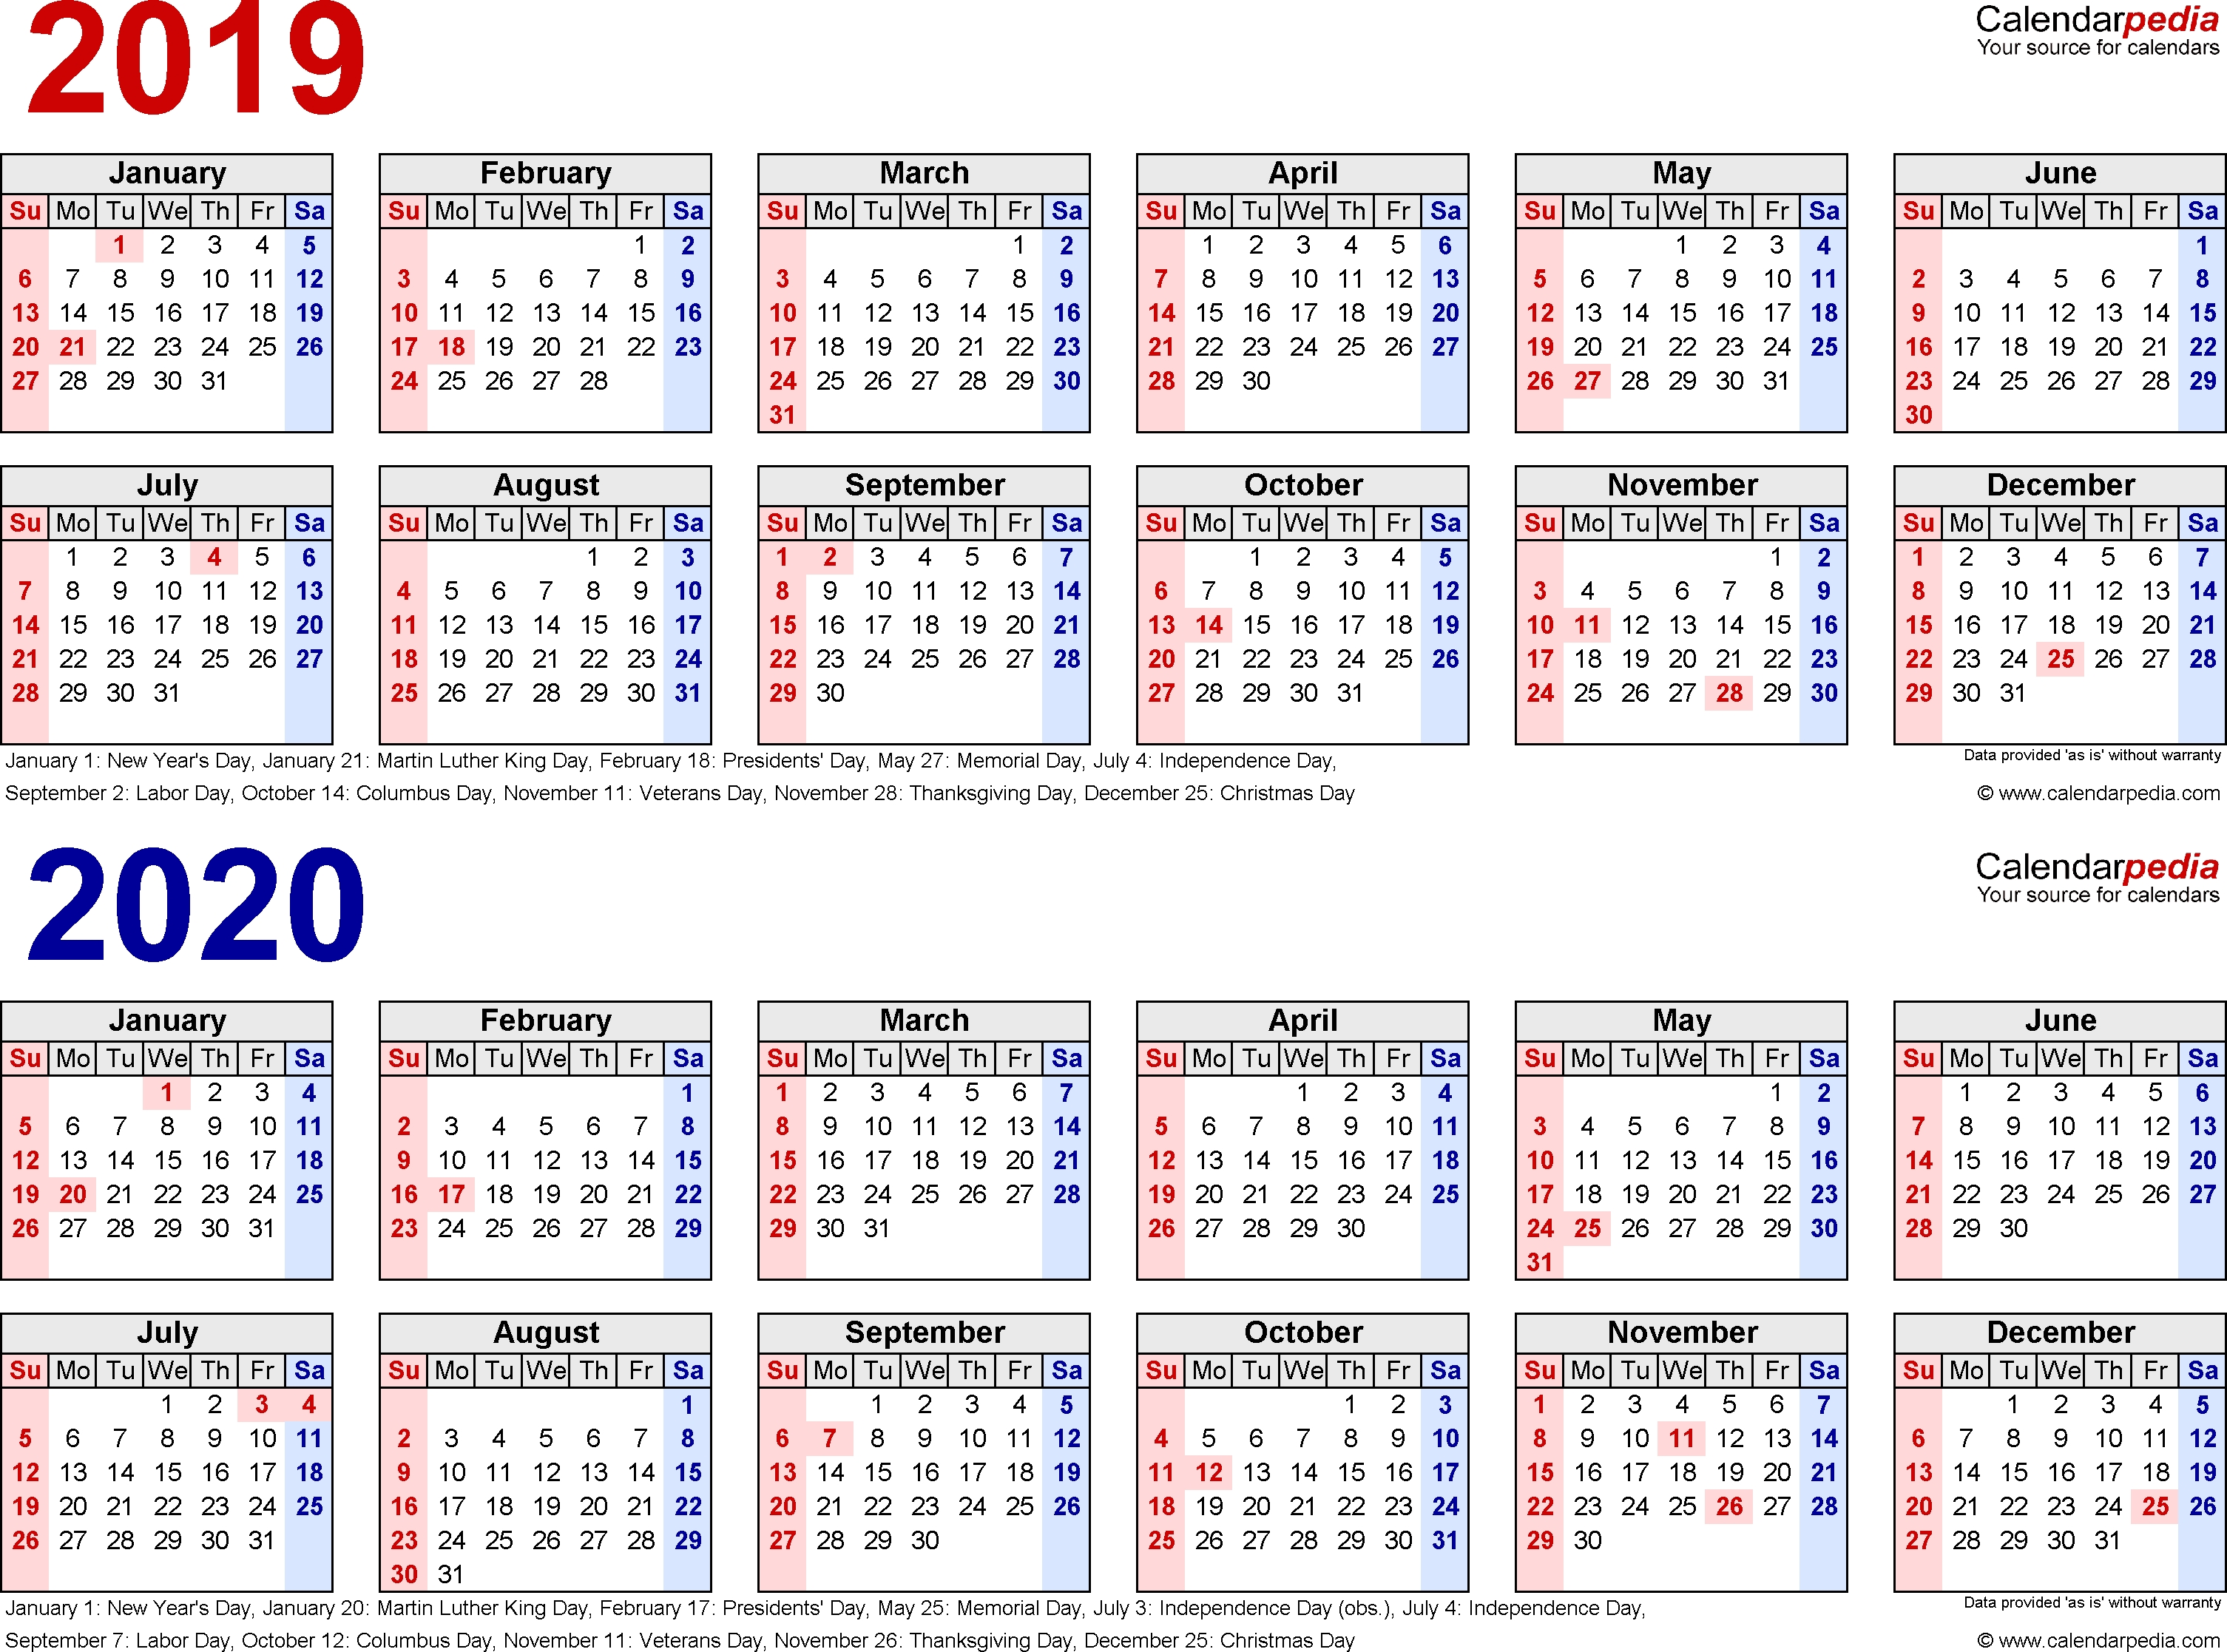 2019-2020 Calendar - Free Printable Two-Year Excel Calendars with 2019-2020 Large Calandar